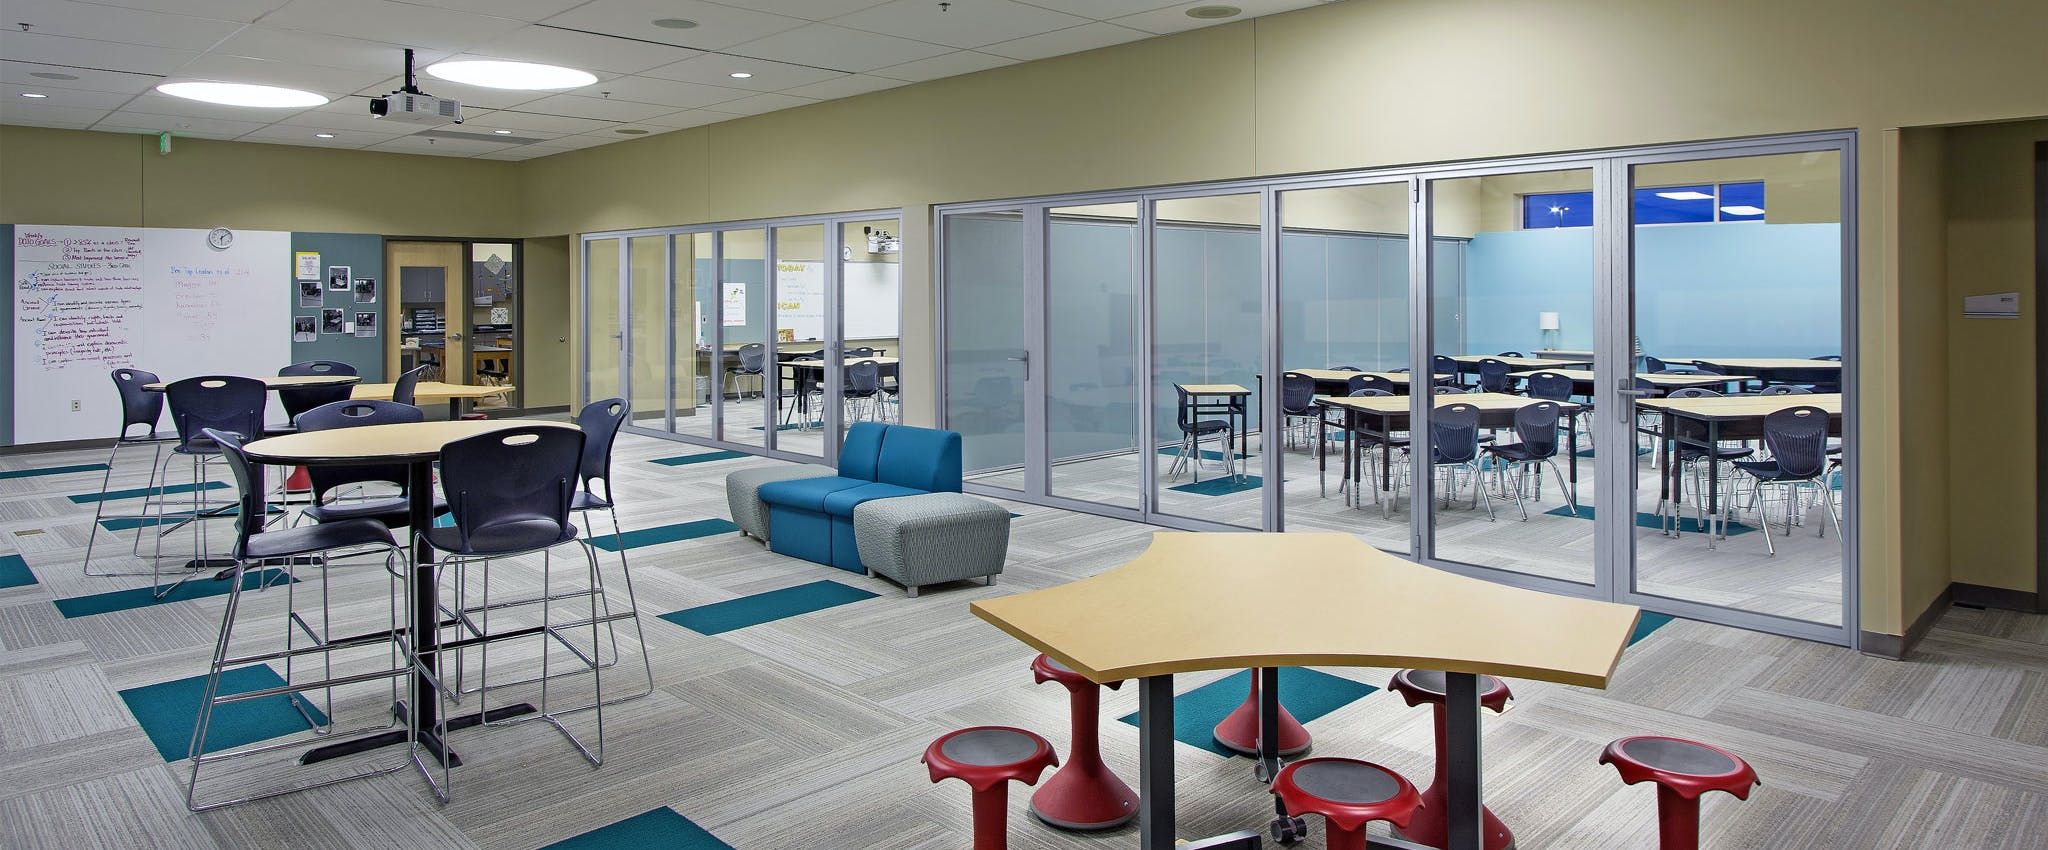 SL64 acoustical LG used for School Design for the 21st Century at Joplin